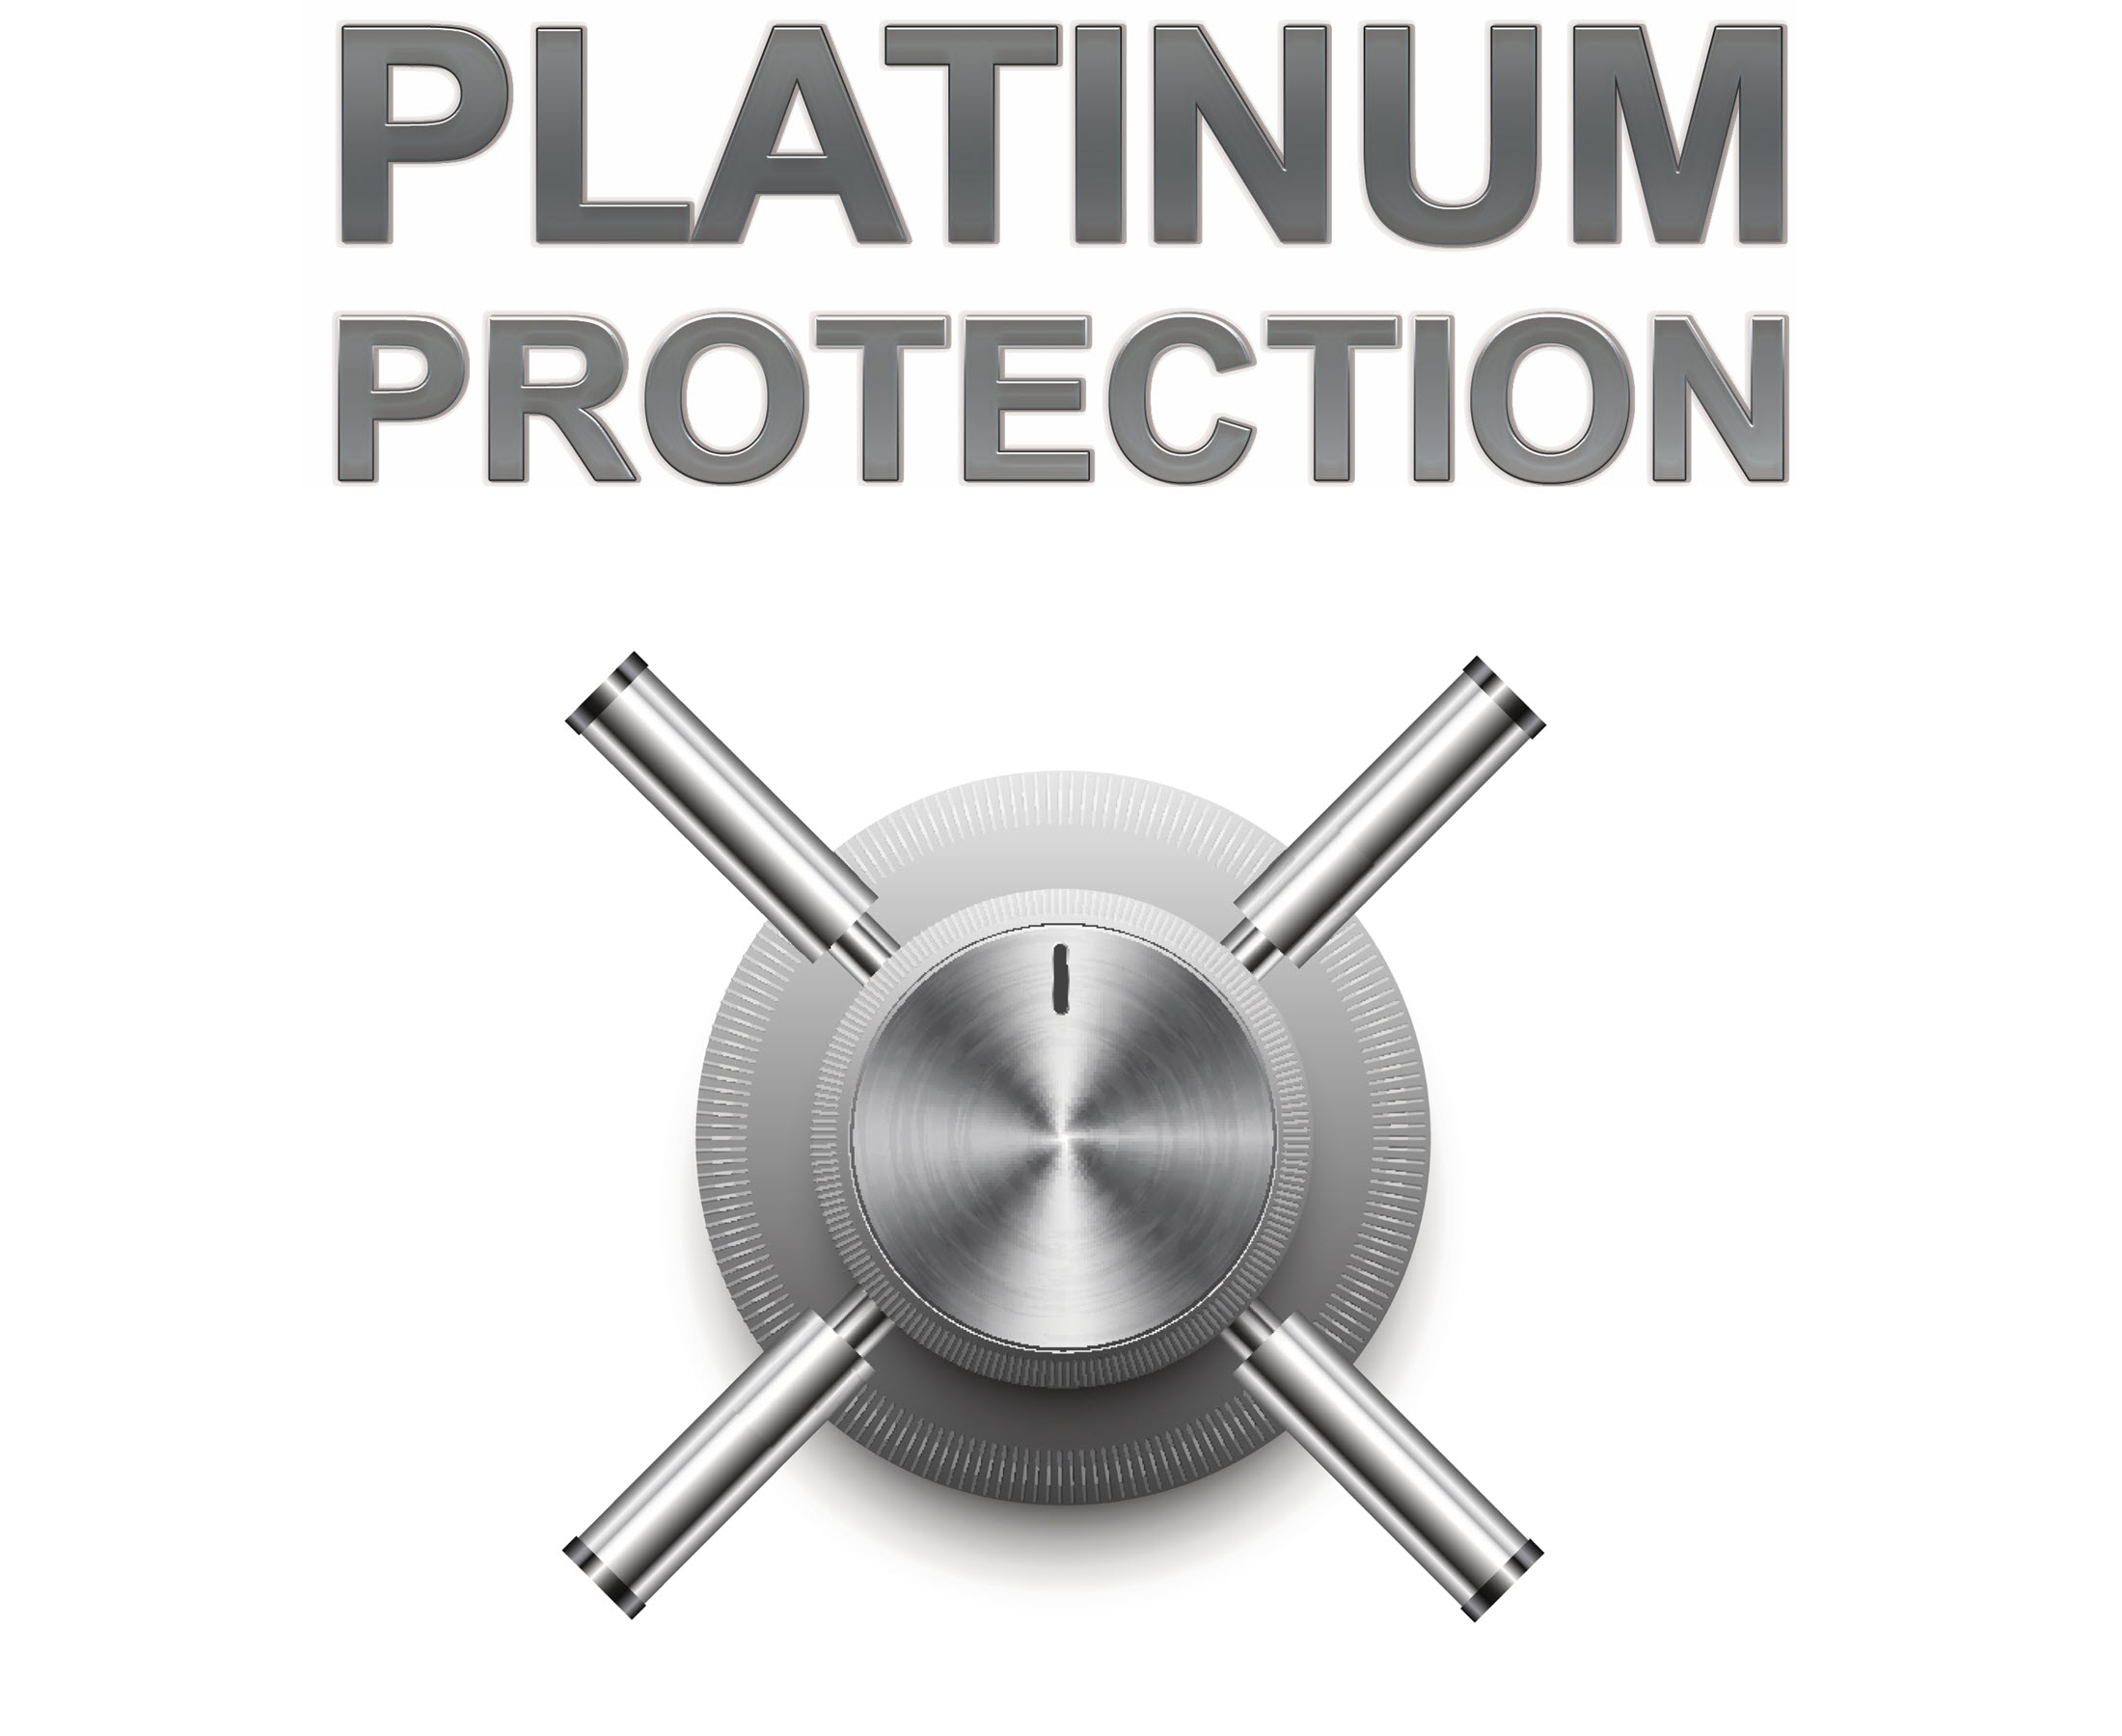 Platinum Protection Logo - Exclusive home warranty coverage from Old Republic Home Protection.